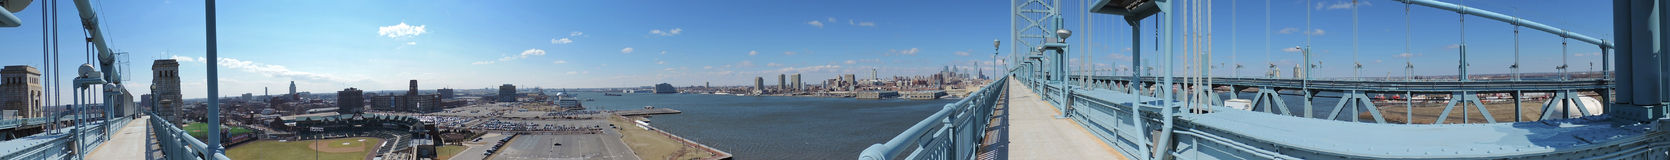 Philadelphia skyline with the Ben Franklin Bridge panoramic Stock Photos